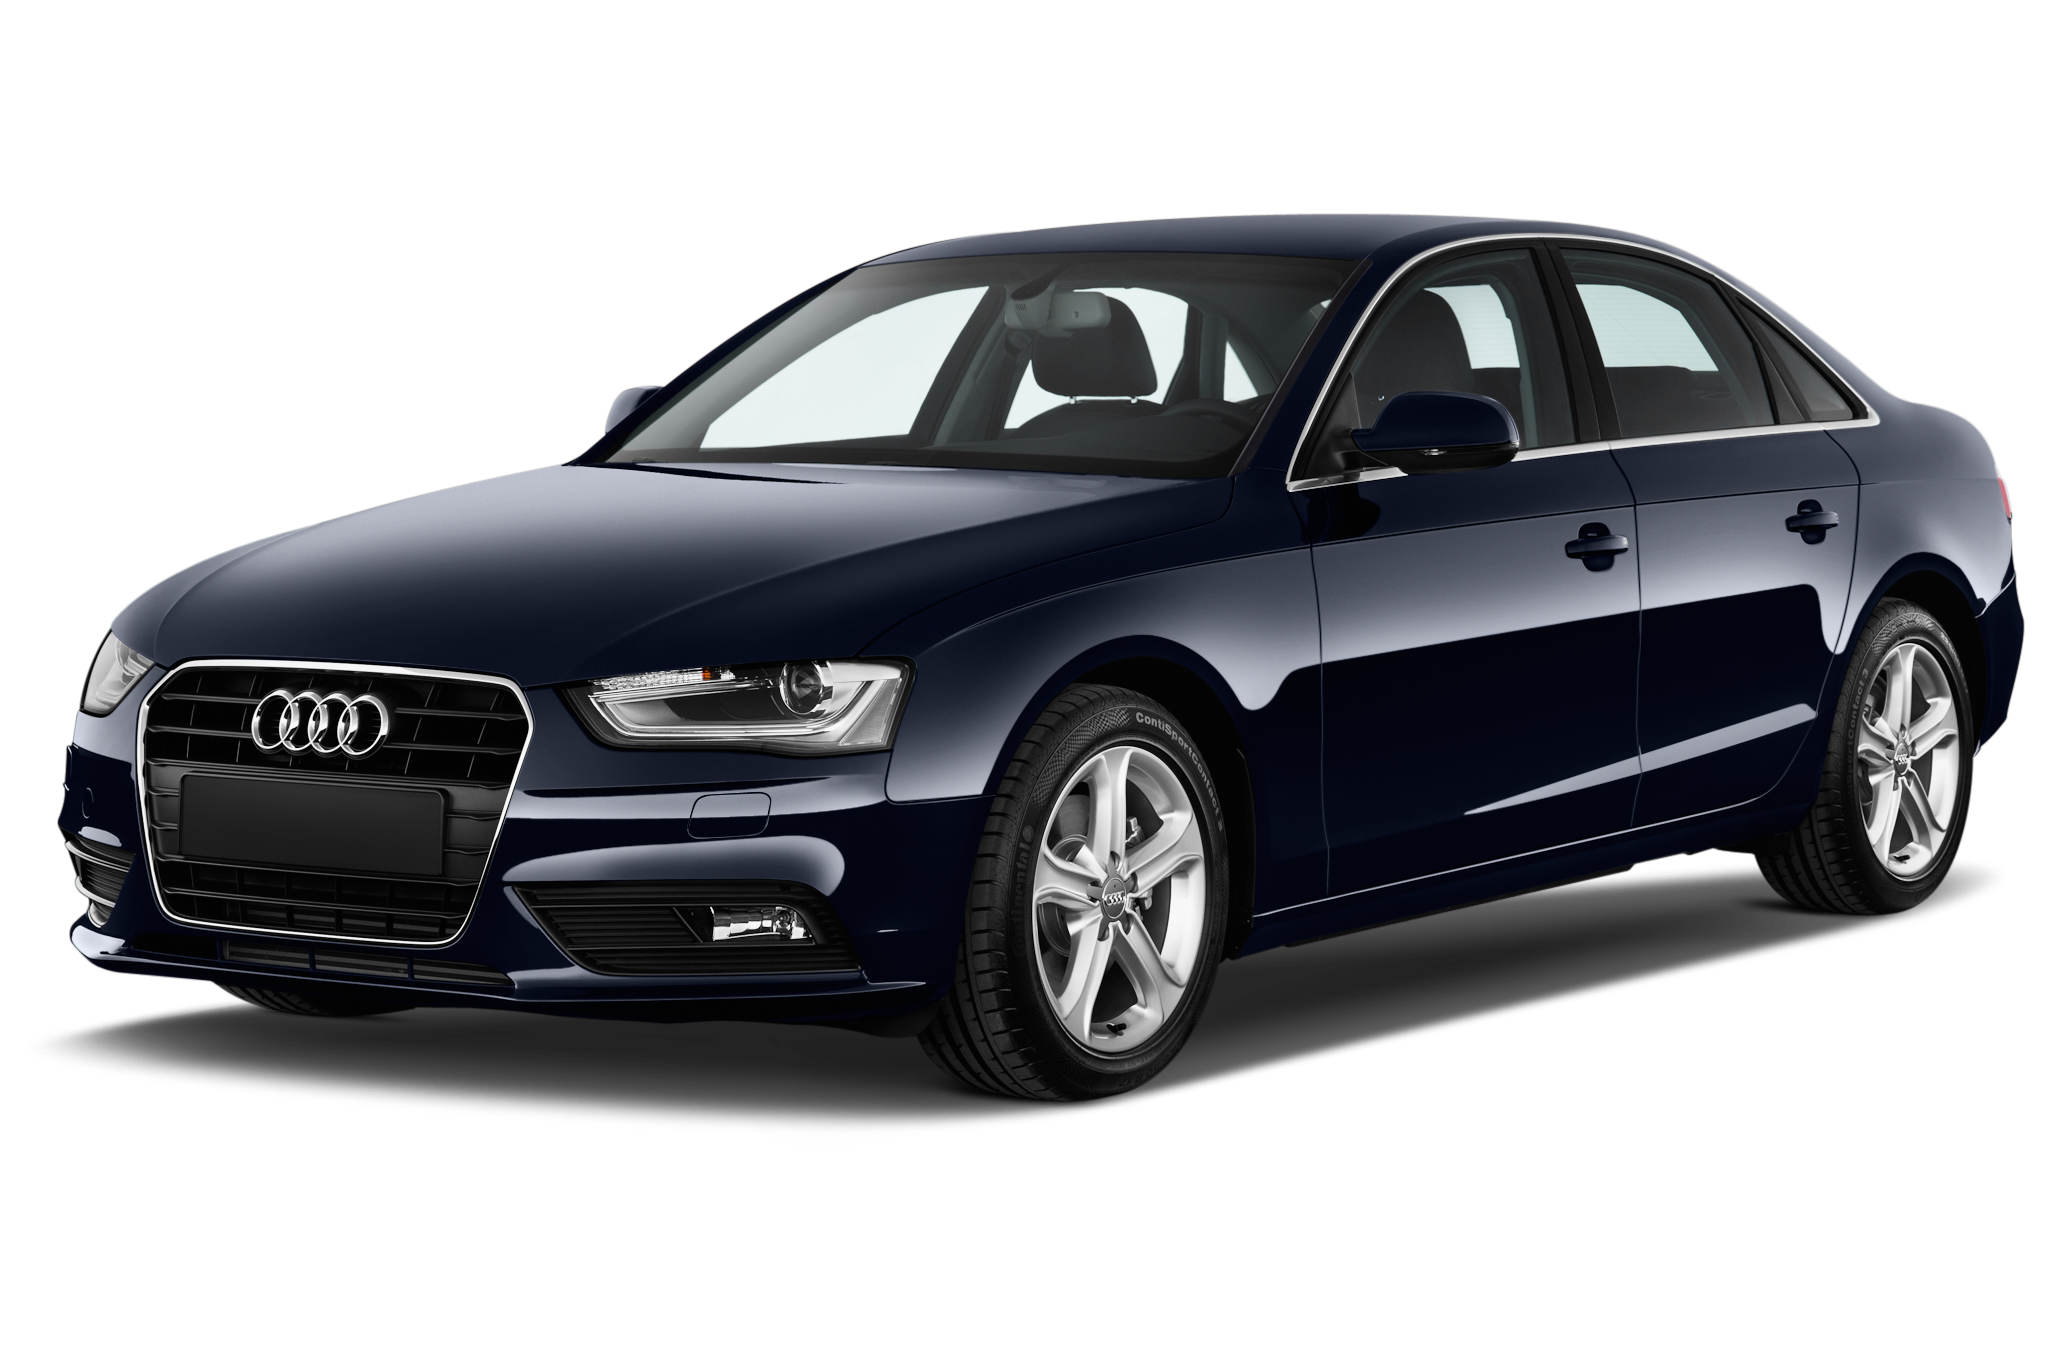 next generation audi a4 to use new 2 0 liter turbo four engine. Black Bedroom Furniture Sets. Home Design Ideas